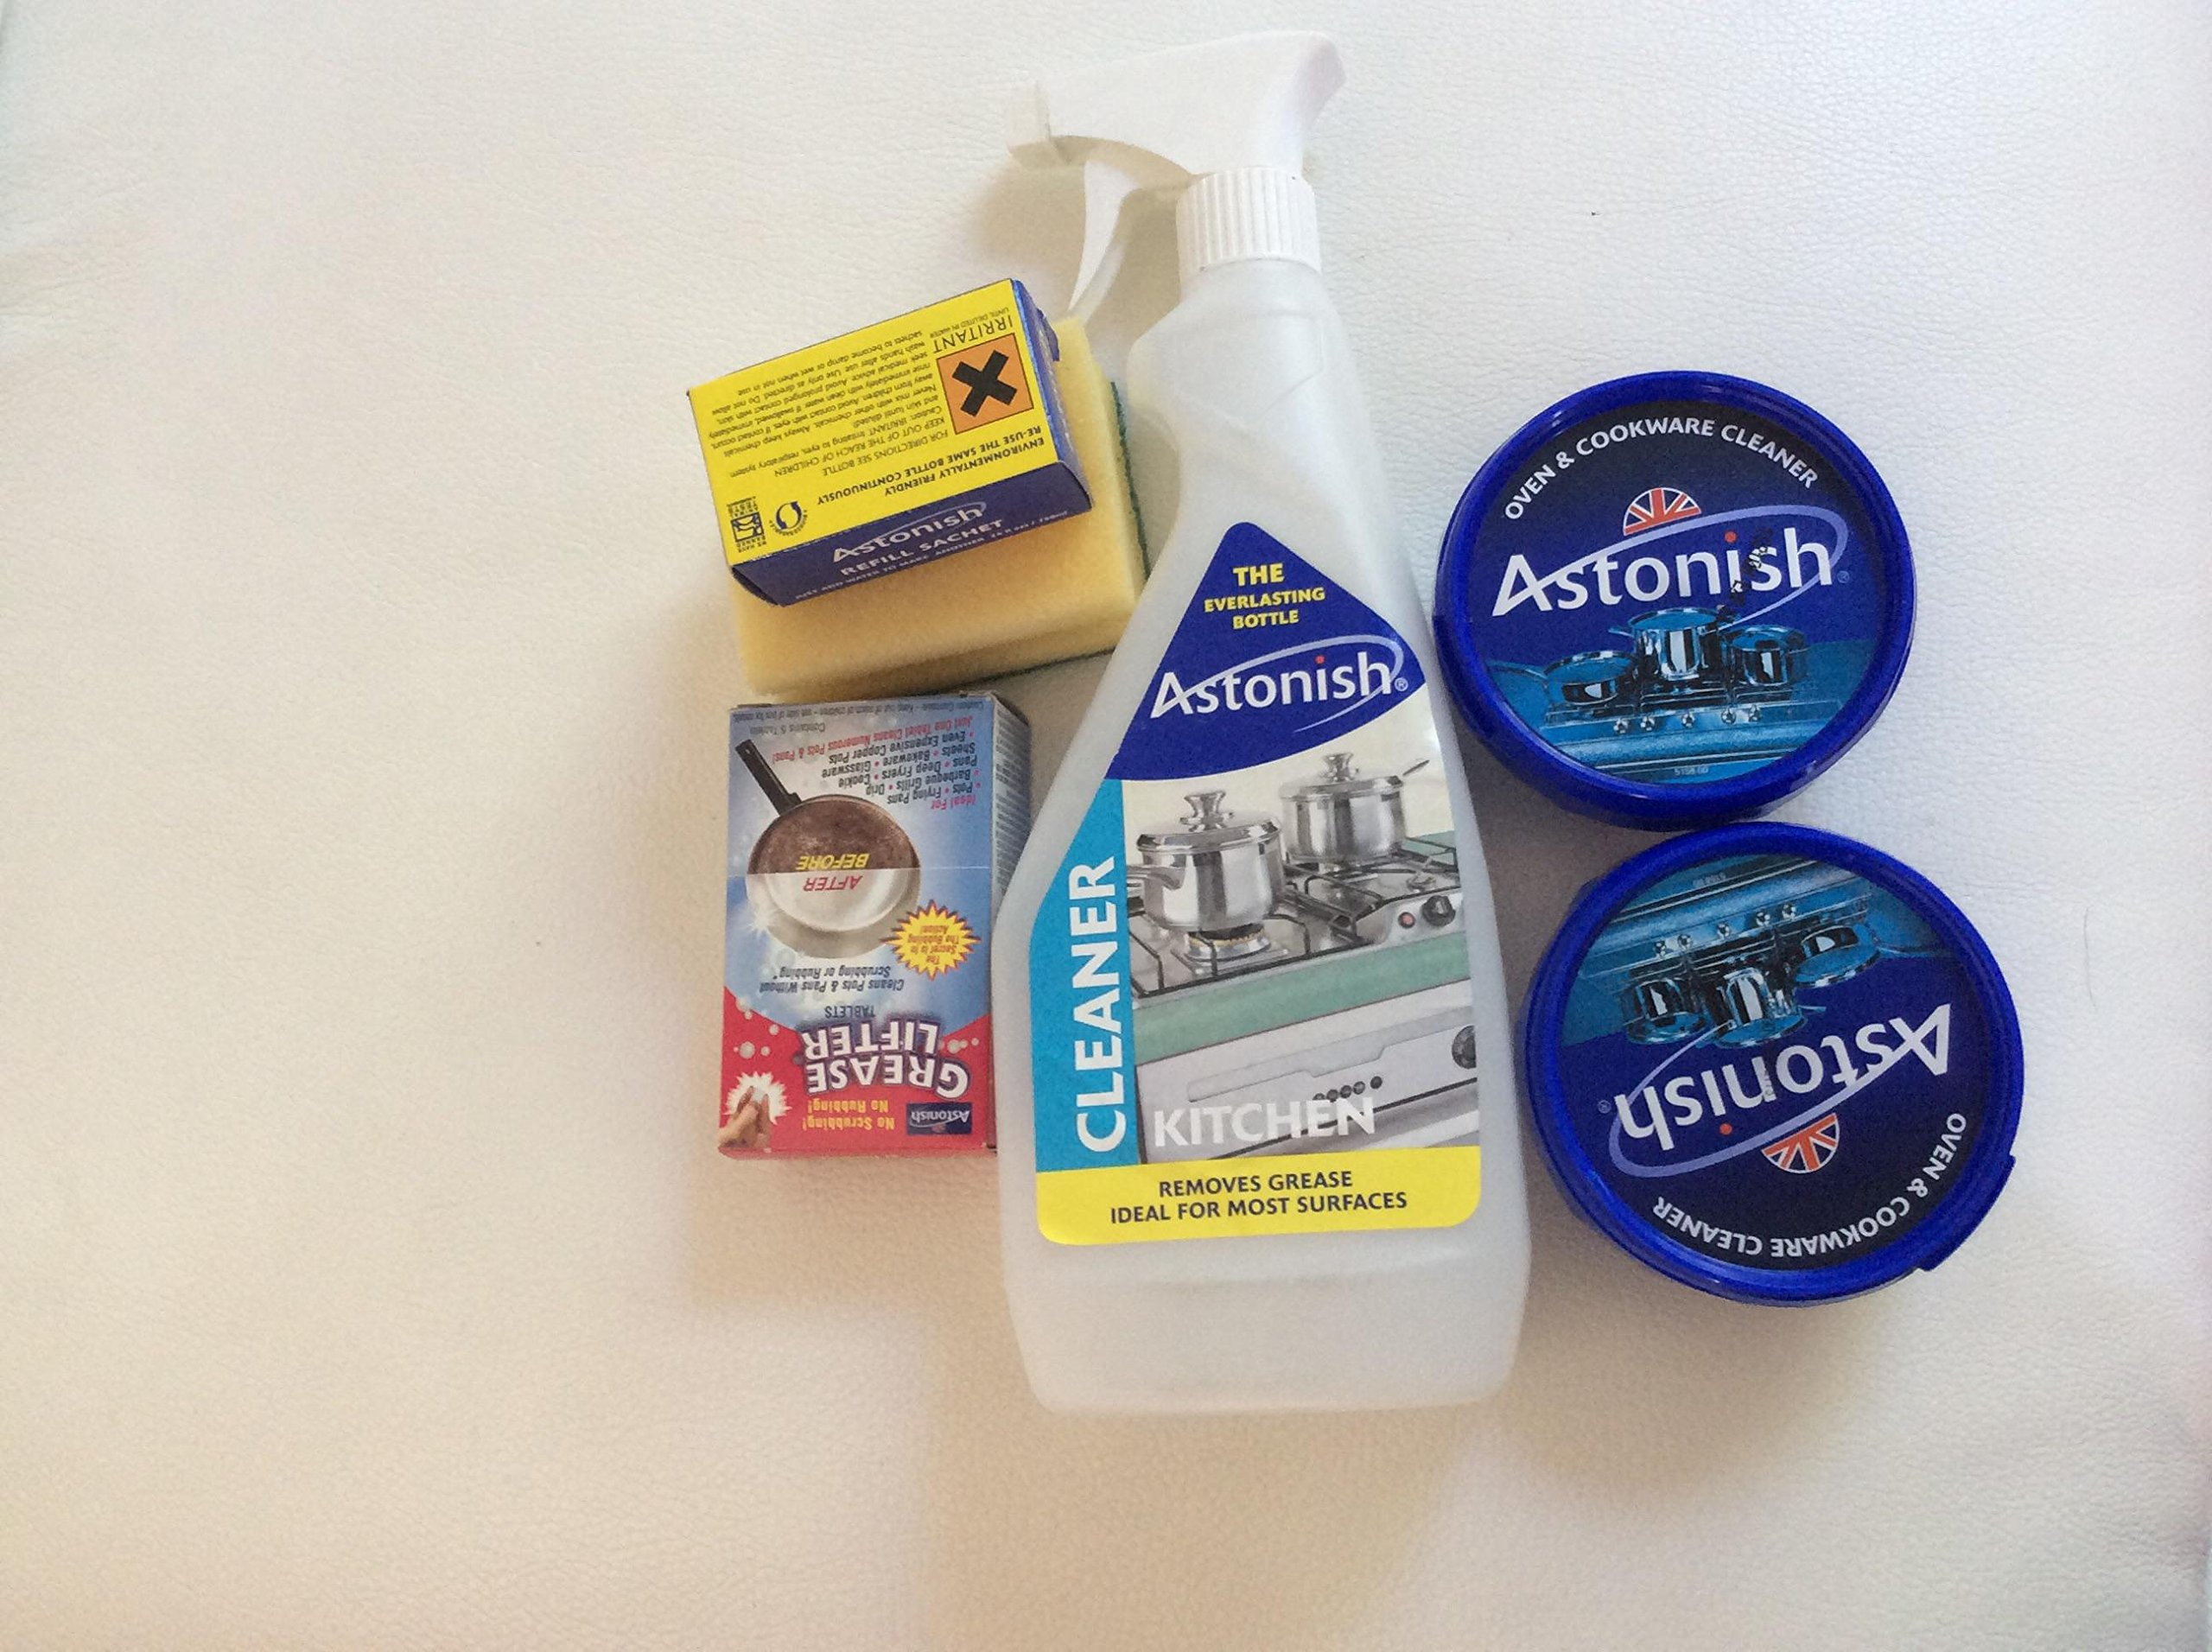 Astonish Oven & Cookware Cleaner and Grease Lifter Kit by Astonish